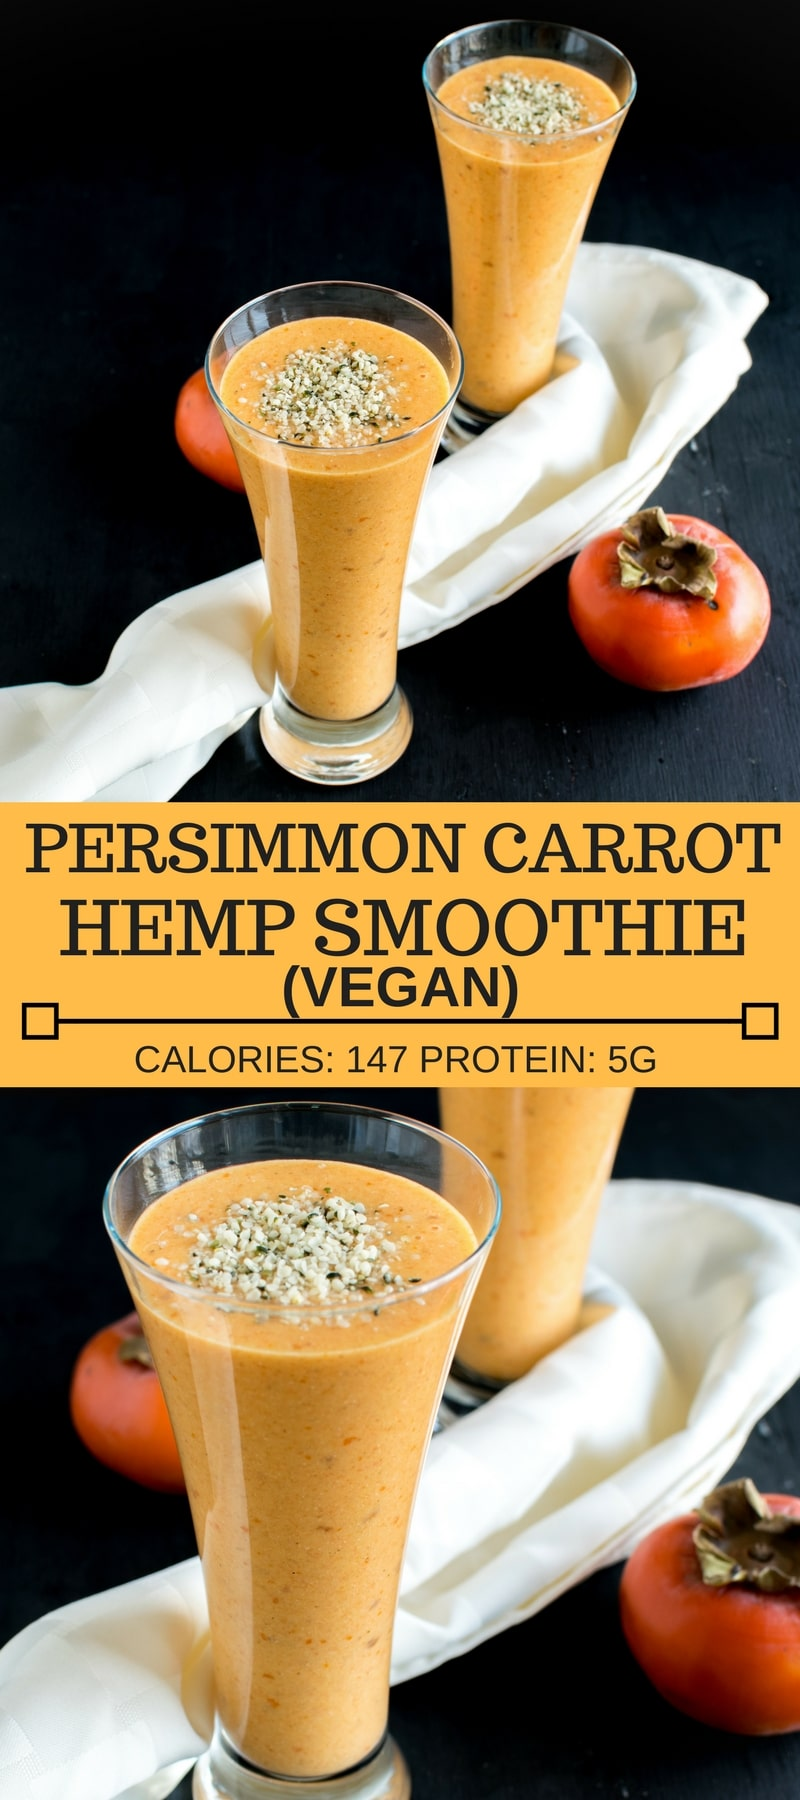 Persimmon Carrot Hemp Smoothie is a low calorie yet a satisfyingly hydrating beverage. It's a perfect energizing drink after workouts. It's also a refreshing evening drink or a nutritious breakfast. All in all it's a versatile beverage that's vegan and gluten free | kiipfit.com